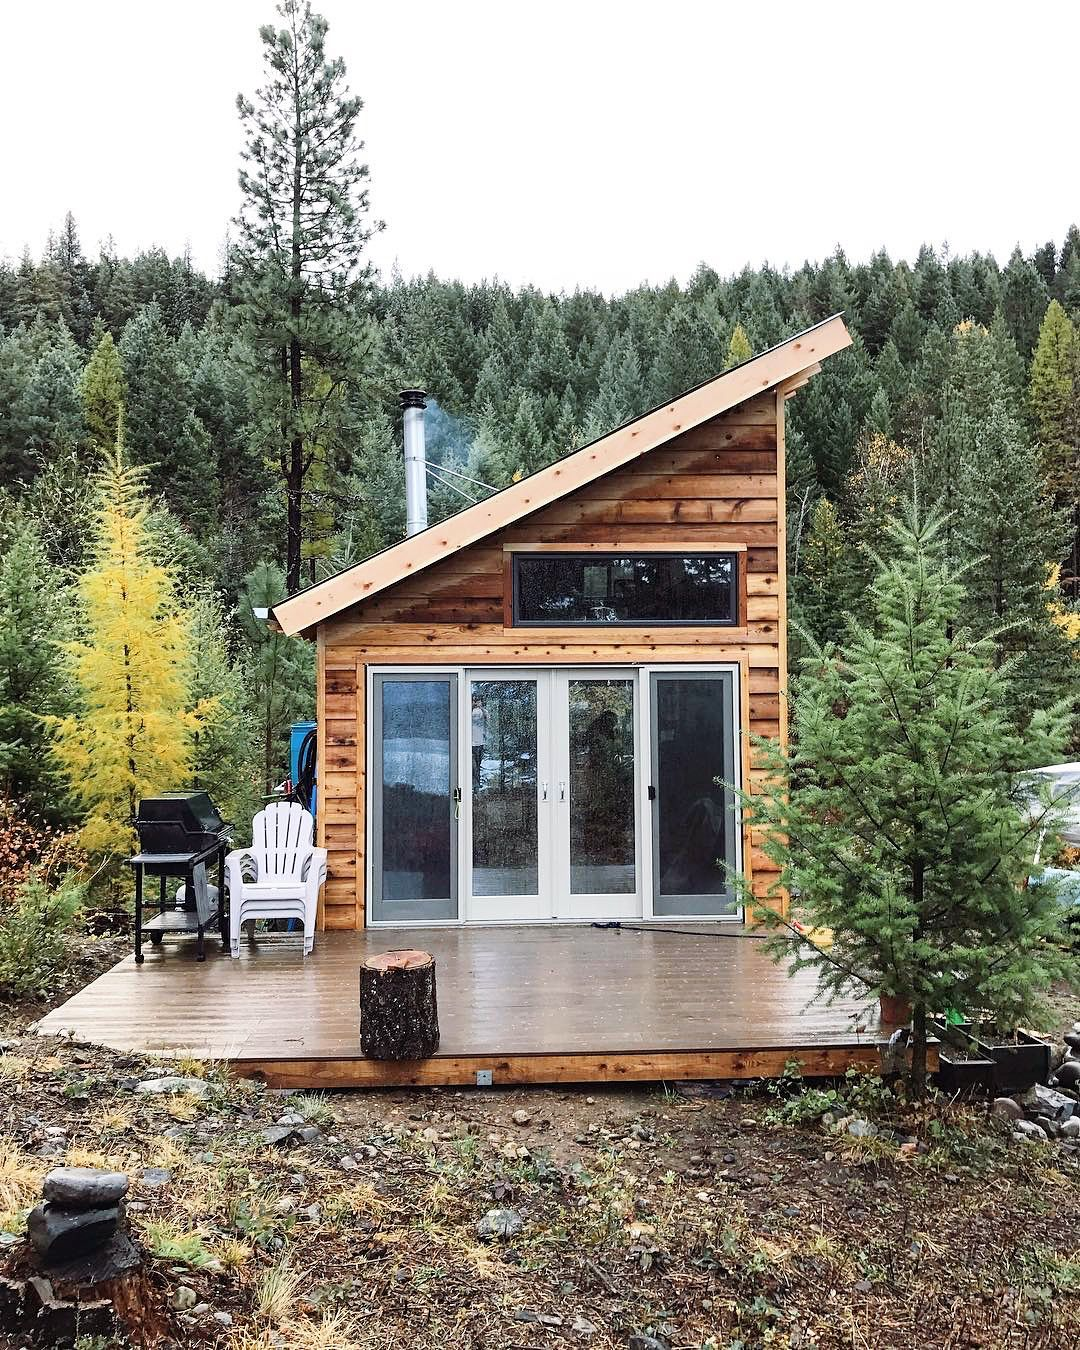 Rwzimmer S Cabin In Idaho Unconventionallyminded Tiny House Interior Design Tiny House Cabin Small House